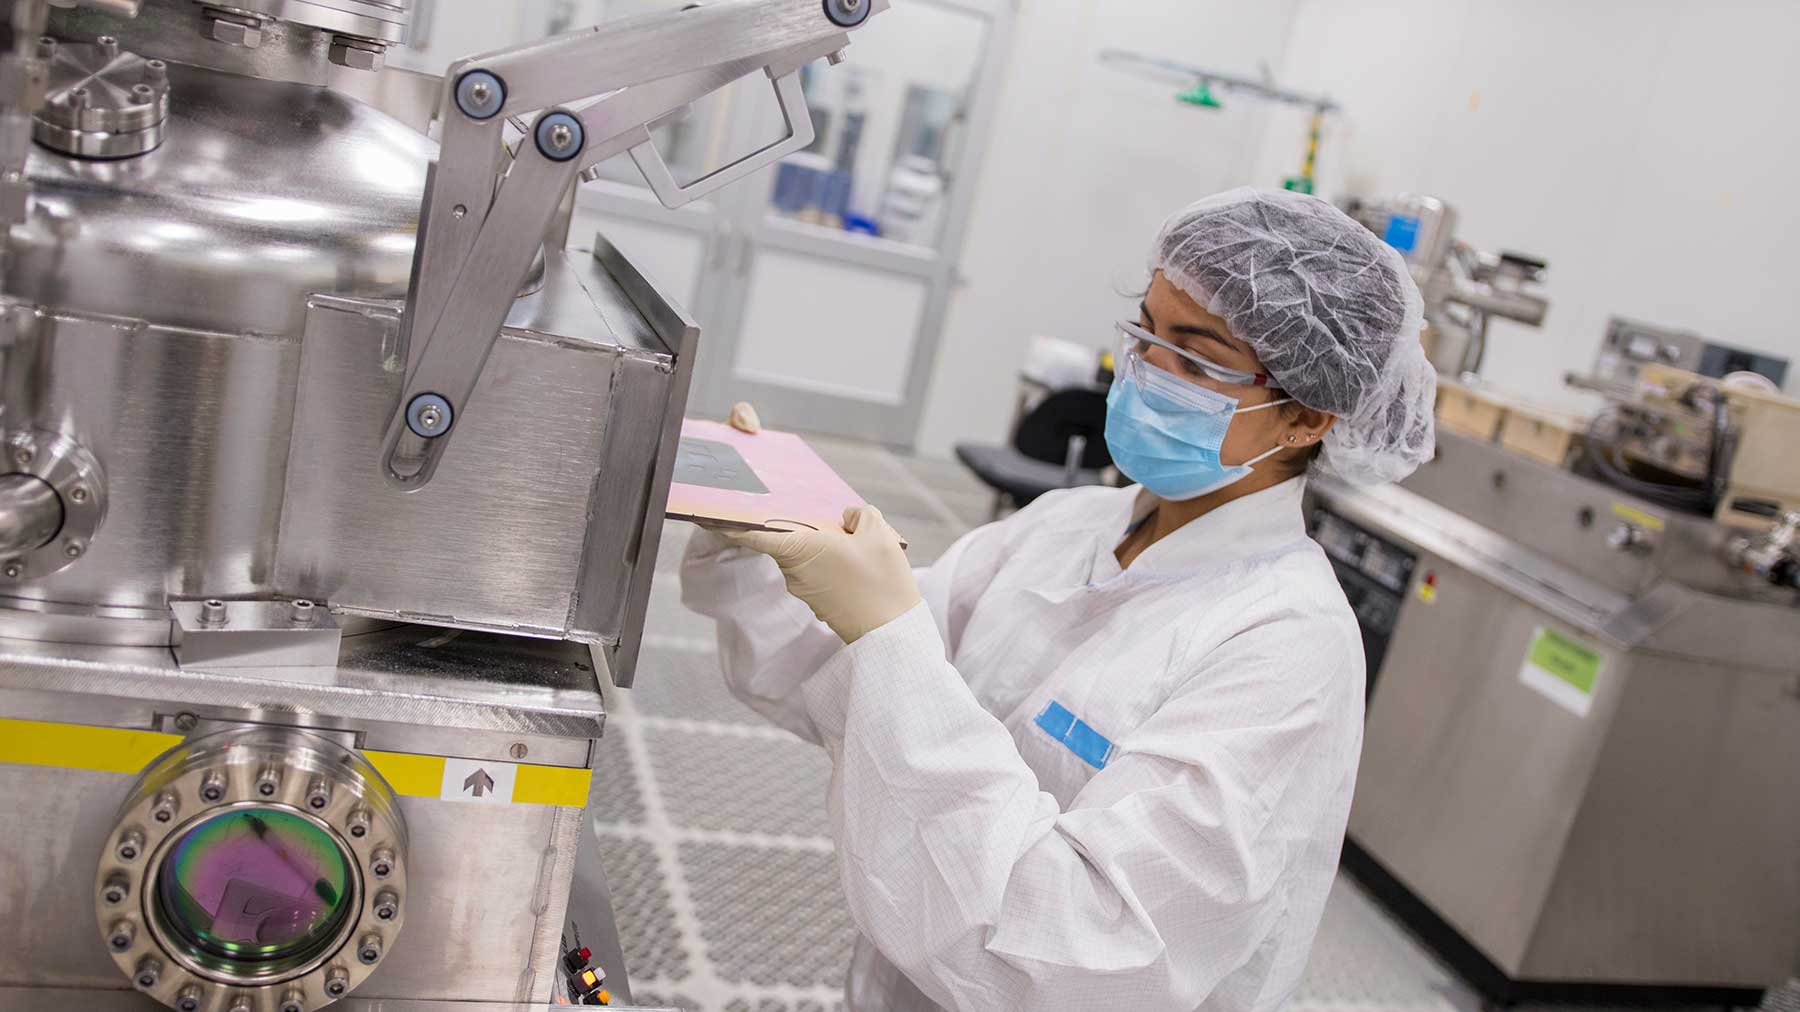 a solar researcher in full white lab gear places an object into a piece of lab equipment